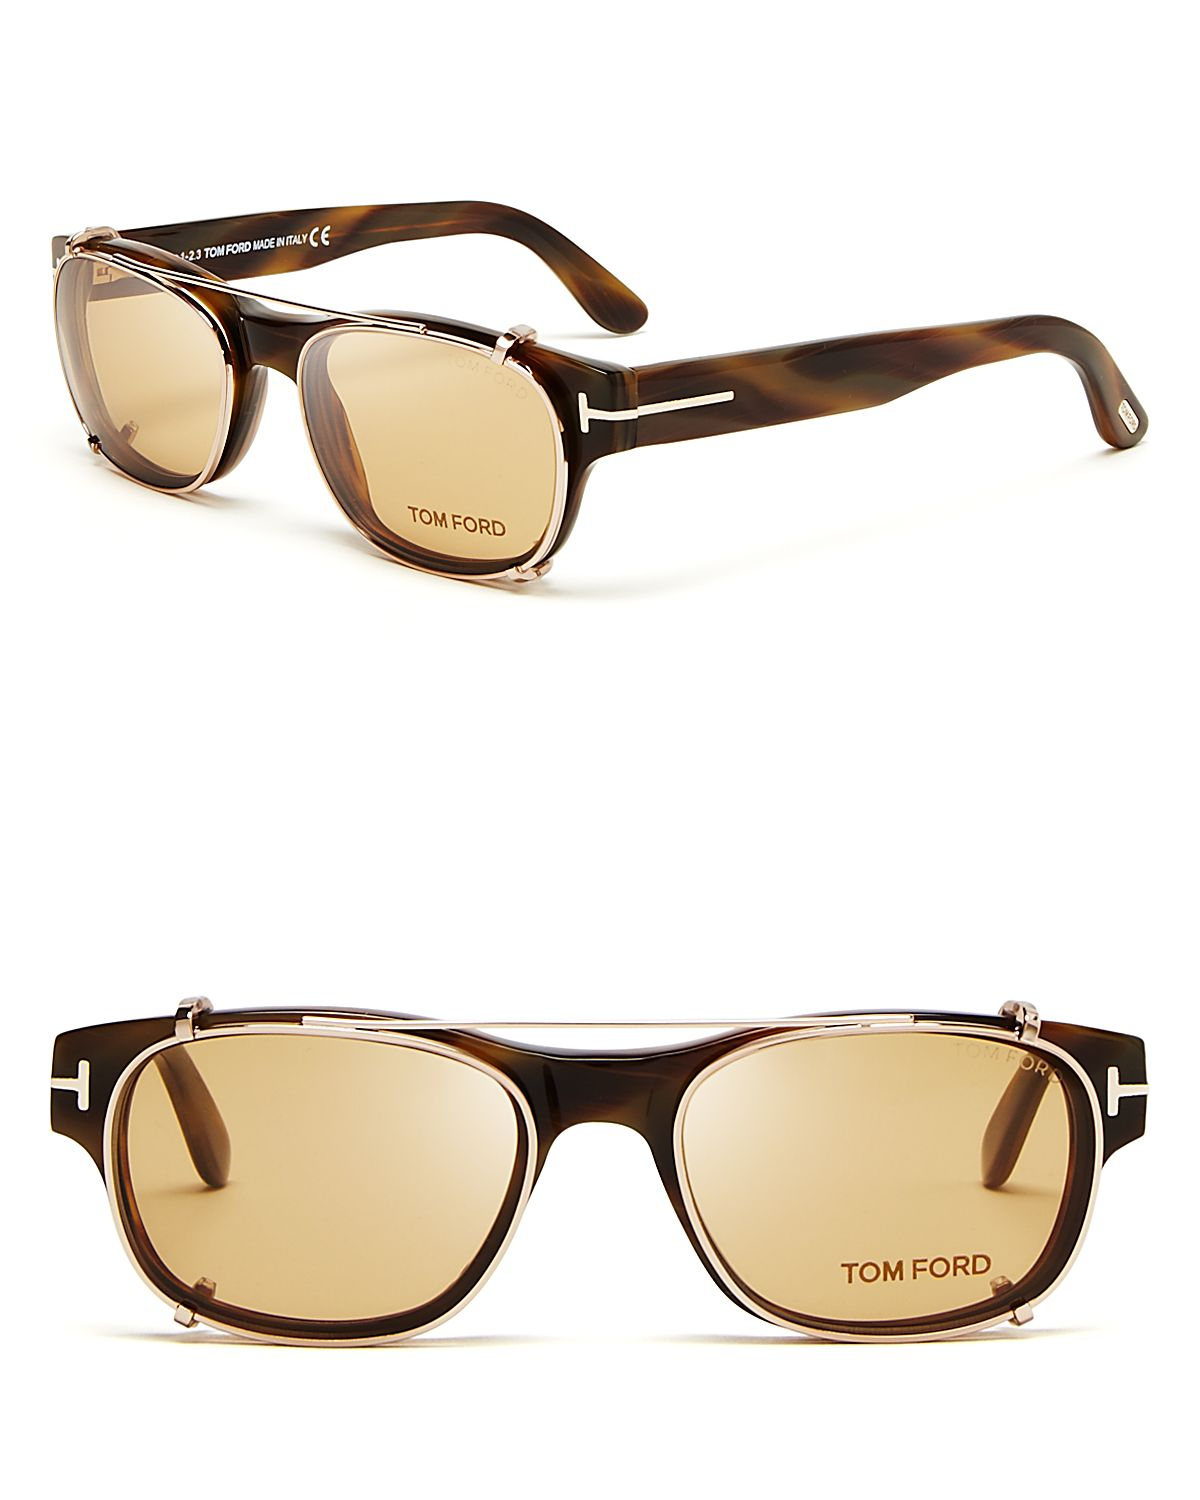 Lyst - Tom Ford Hollywood Collection Snowden Optical Frames with ...